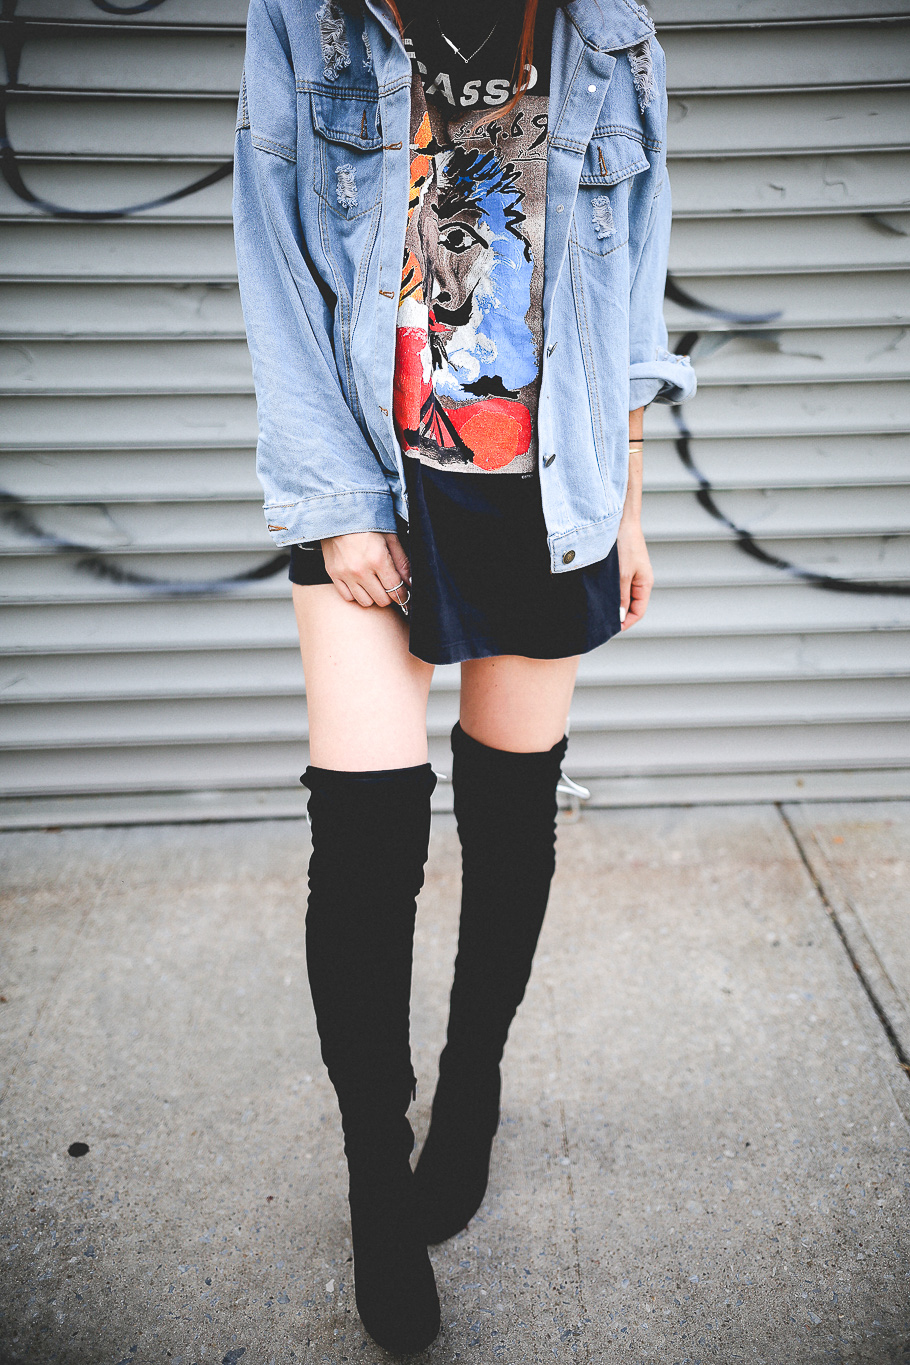 Le Happy wearing McQ thigh high boots and denim jacket